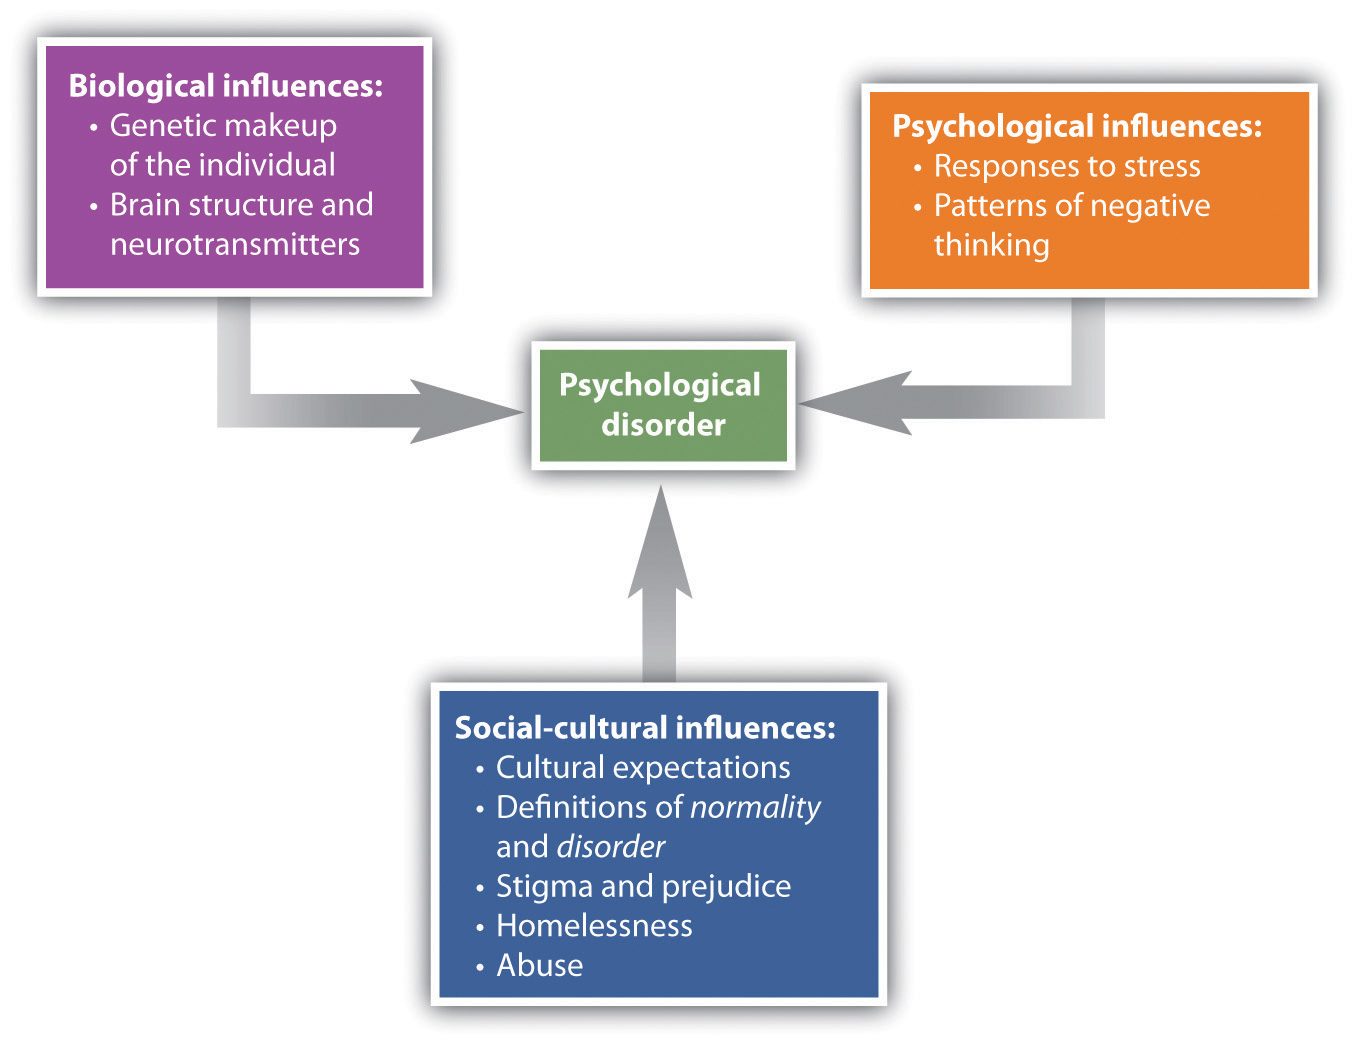 """This chart has four textboxes. A box labeled """"Psychological disorder"""" is at the centre, and all other boxes point toward it. An arrow points to the centre from a box labeled """"Biological influences"""" containing """"genetic makeup of the individual; brain structure and neurotransmitters."""" Another arrow points to the centre from a box labeled """"Psychological influences"""" containing """"responses to stress; patterns of negative thinking."""" A third arrow points to the centre from a box labeled """"Social-cultural influences"""" containing """"cultural expectations; definitions of normality and disorder; stigma and prejudice; homelessness; abuse."""""""